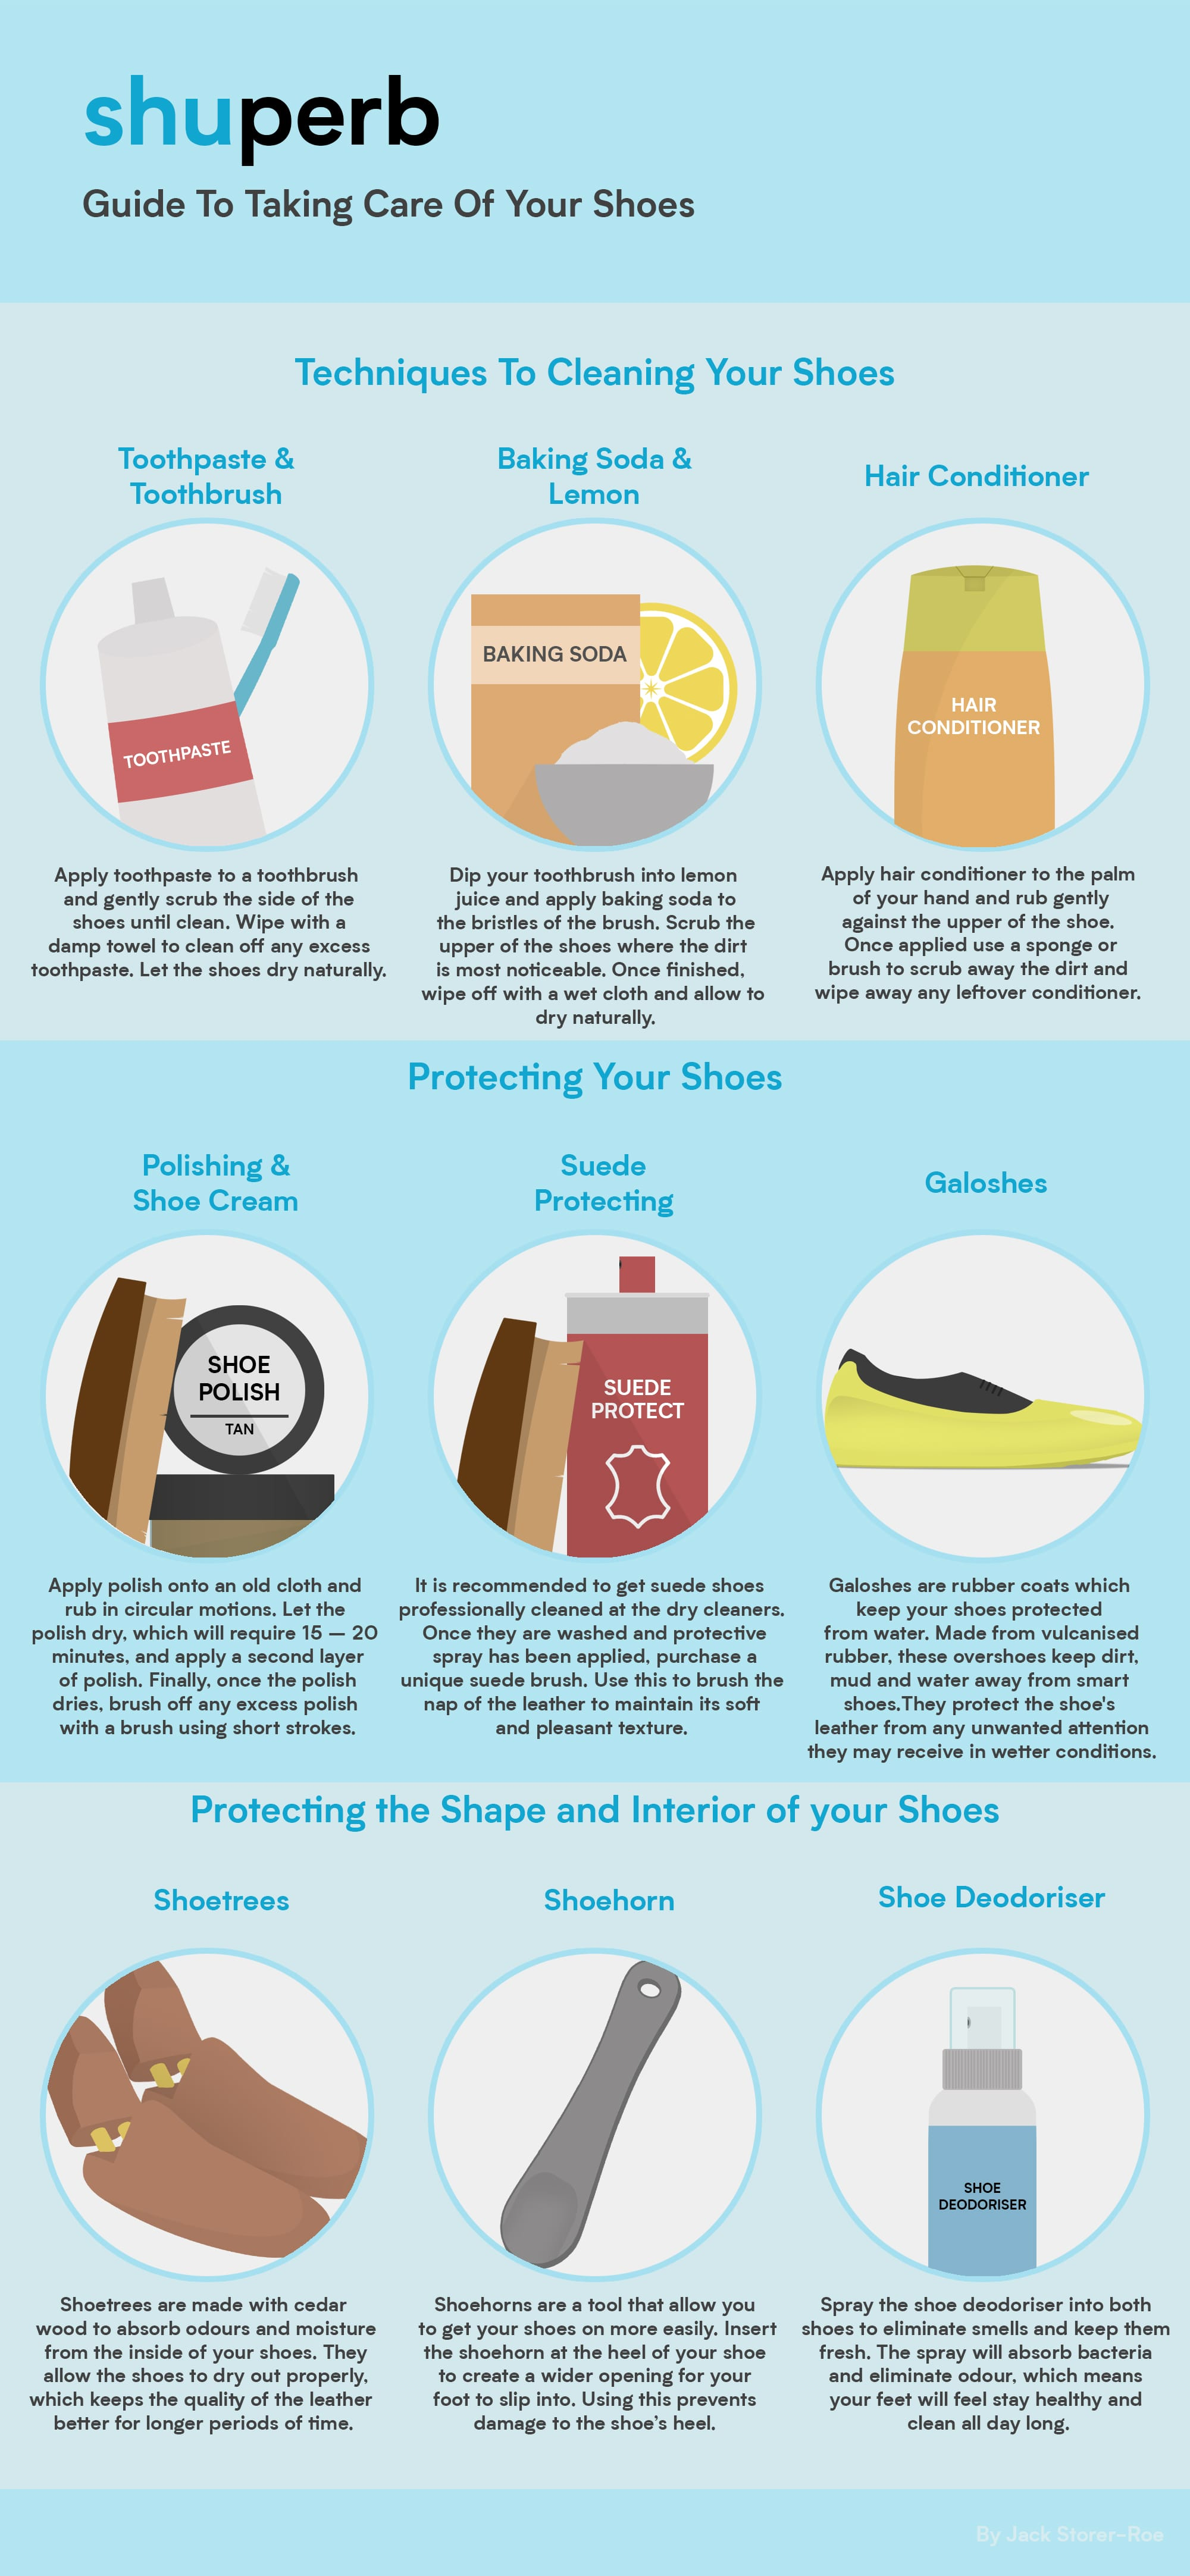 Shuperb's Guide To Care Of Your Shoes